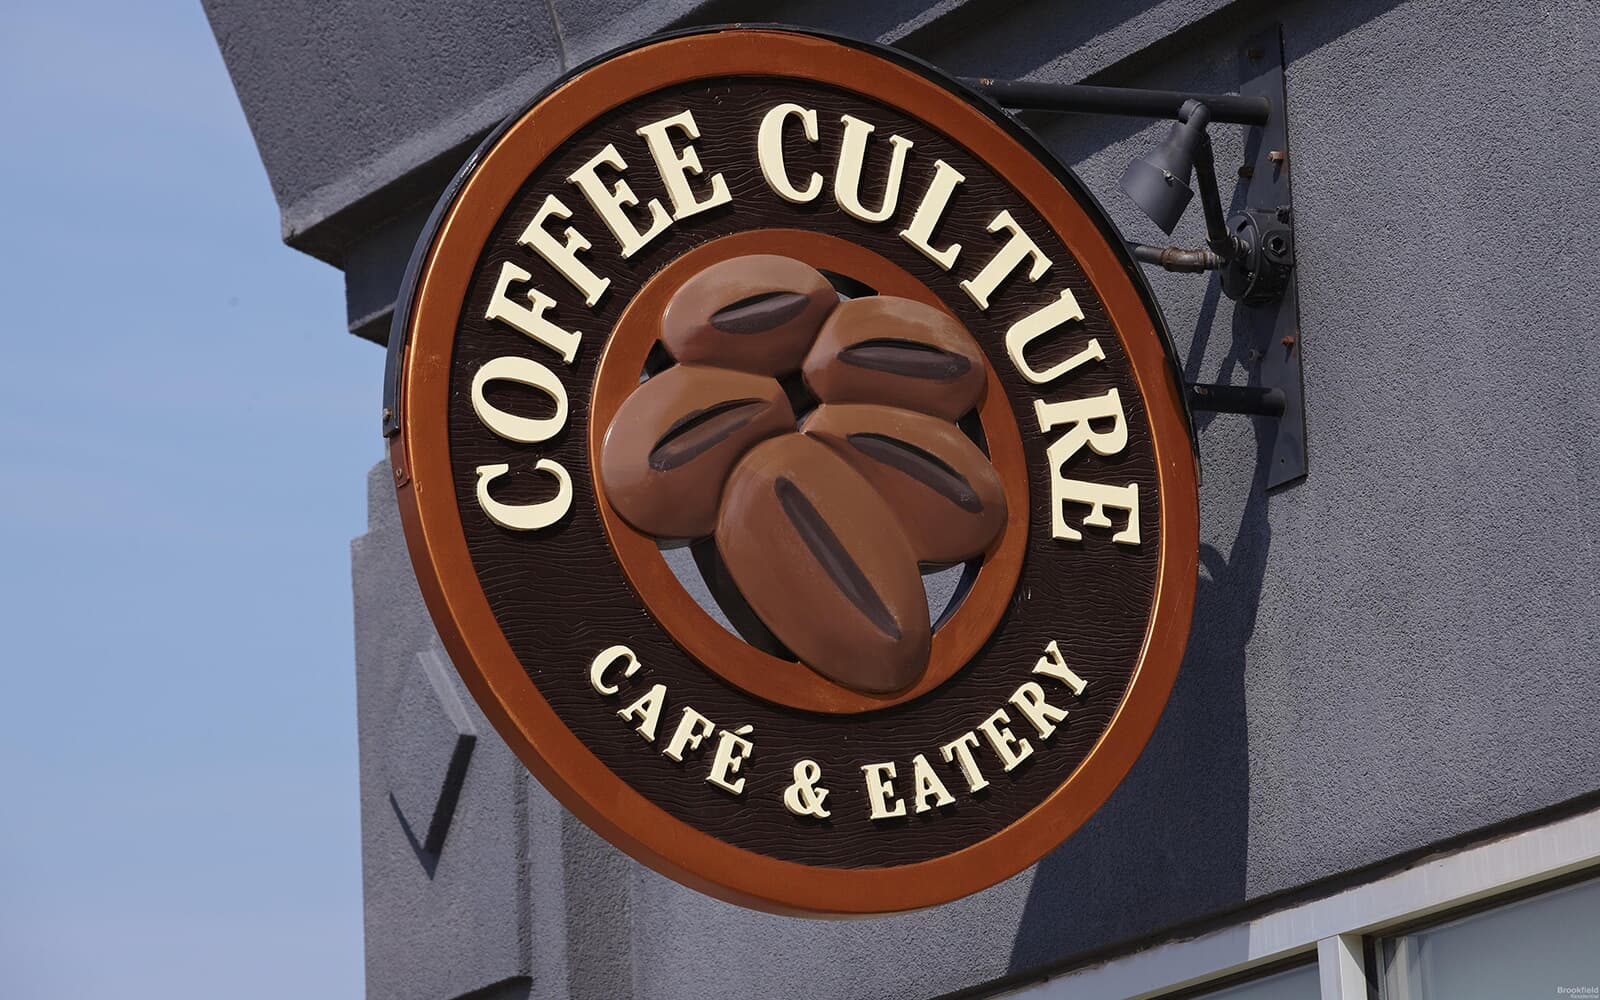 Coffee Culture Cafe & Eatery in Baxter, ON